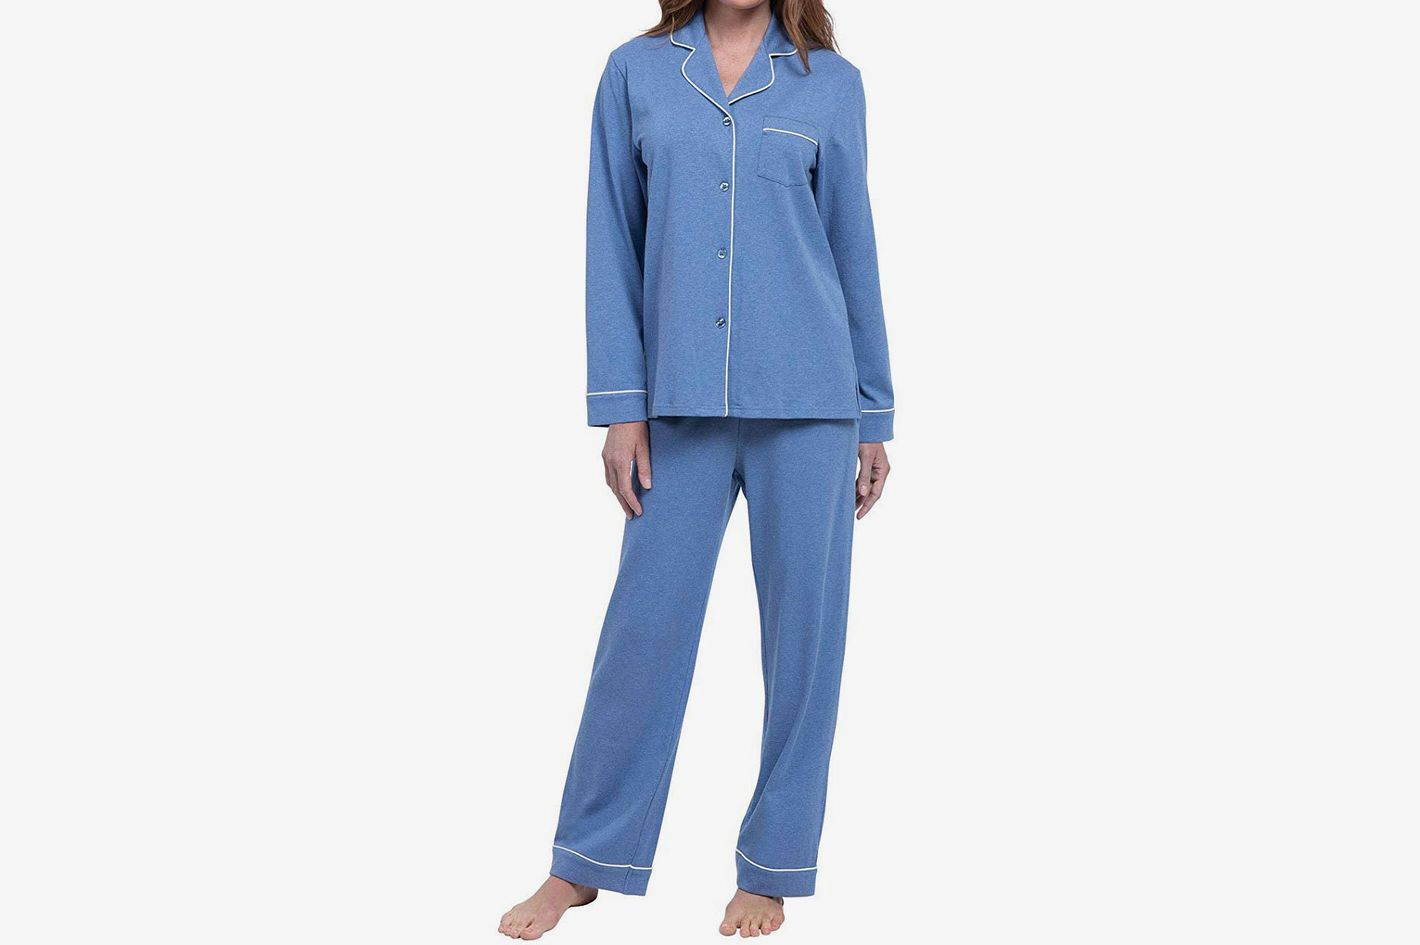 7271b8db707 PajamaGram Pajamas for Women - Cotton Jersey Womens Pajamas